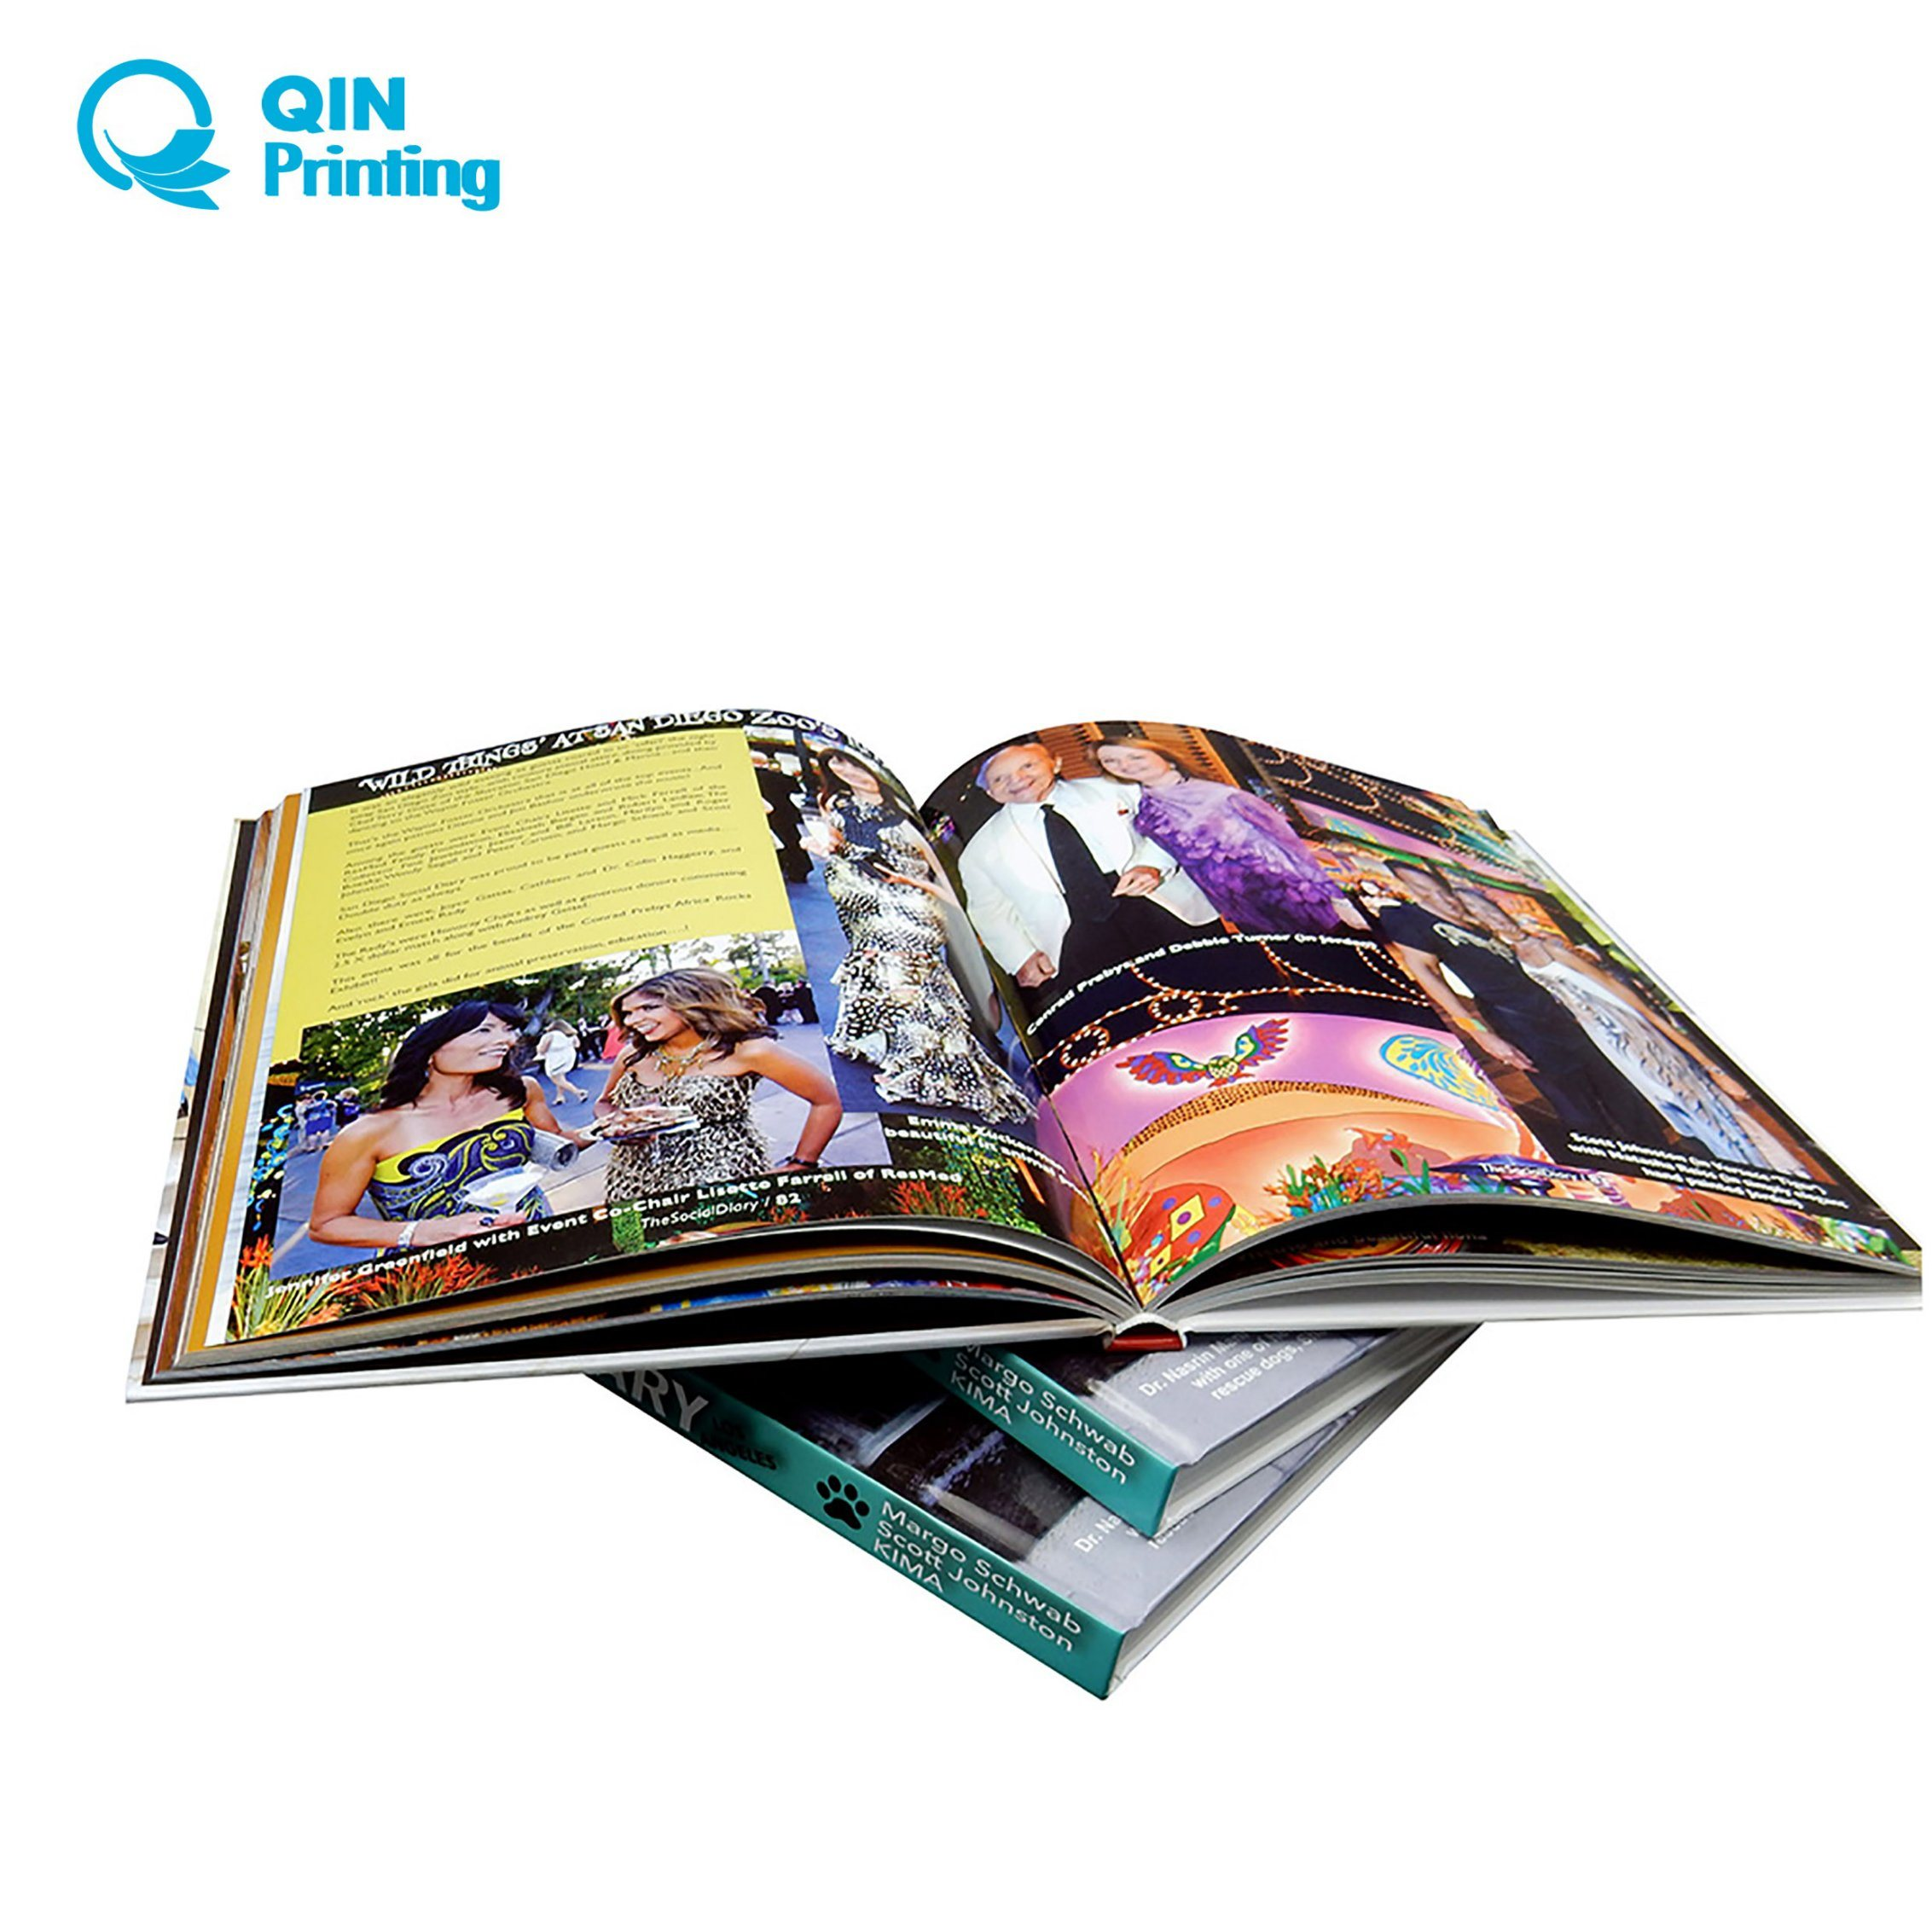 China Full Color Book Printing and Publishing Photos & Pictures ...